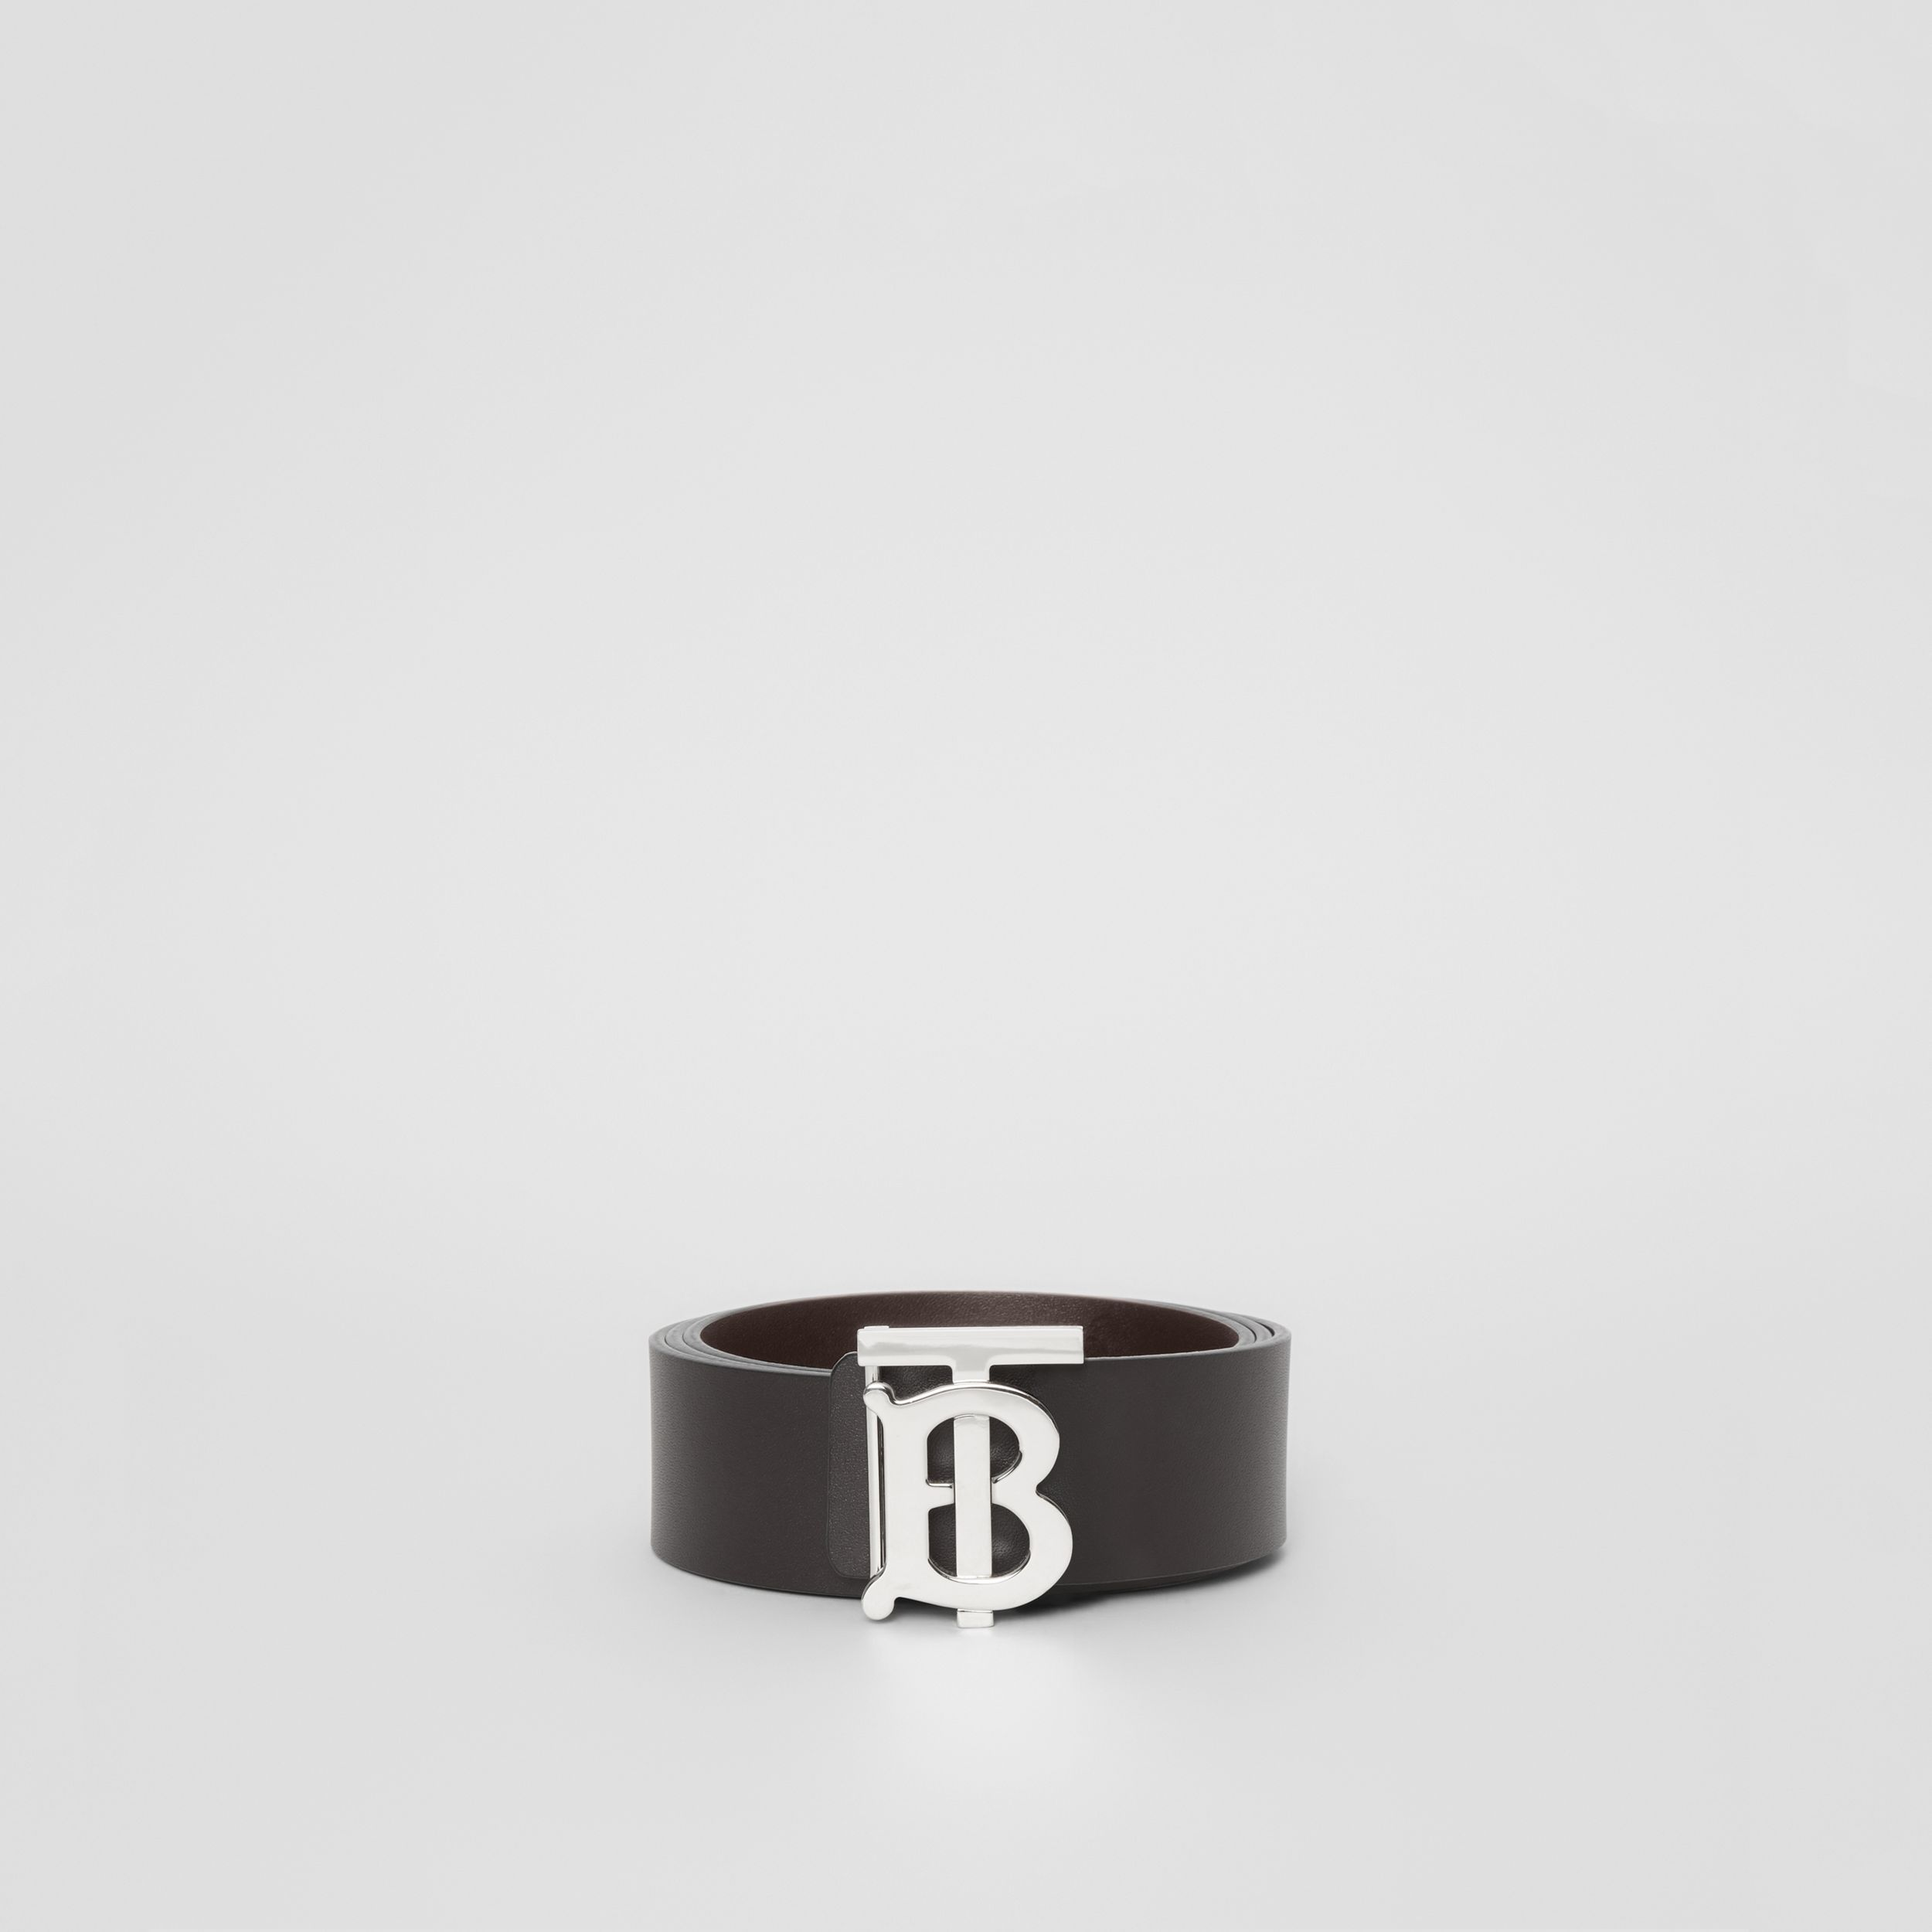 Reversible Monogram Motif Leather Belt in Black/malt Brown - Men | Burberry - 4